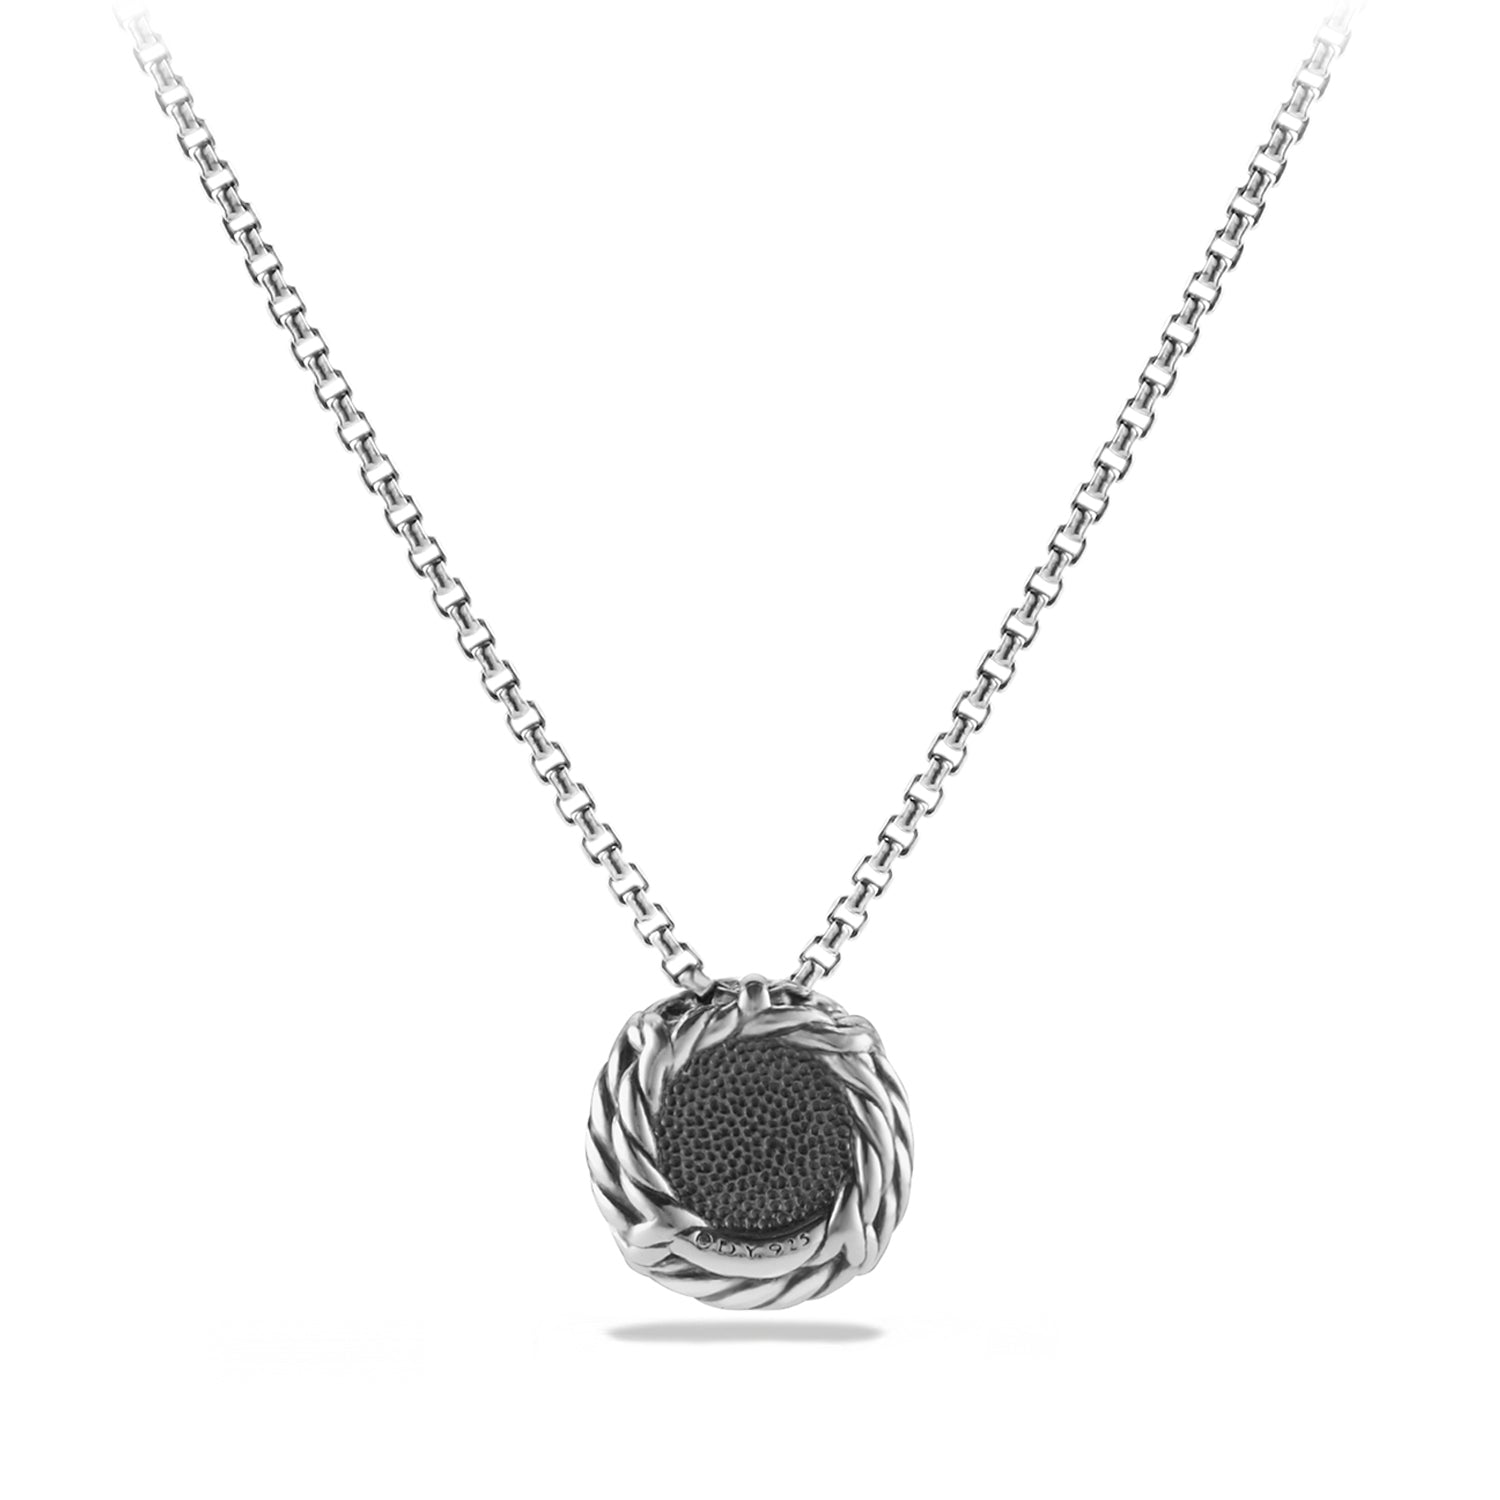 Chatelaine Pendant Necklace with Black Onyx